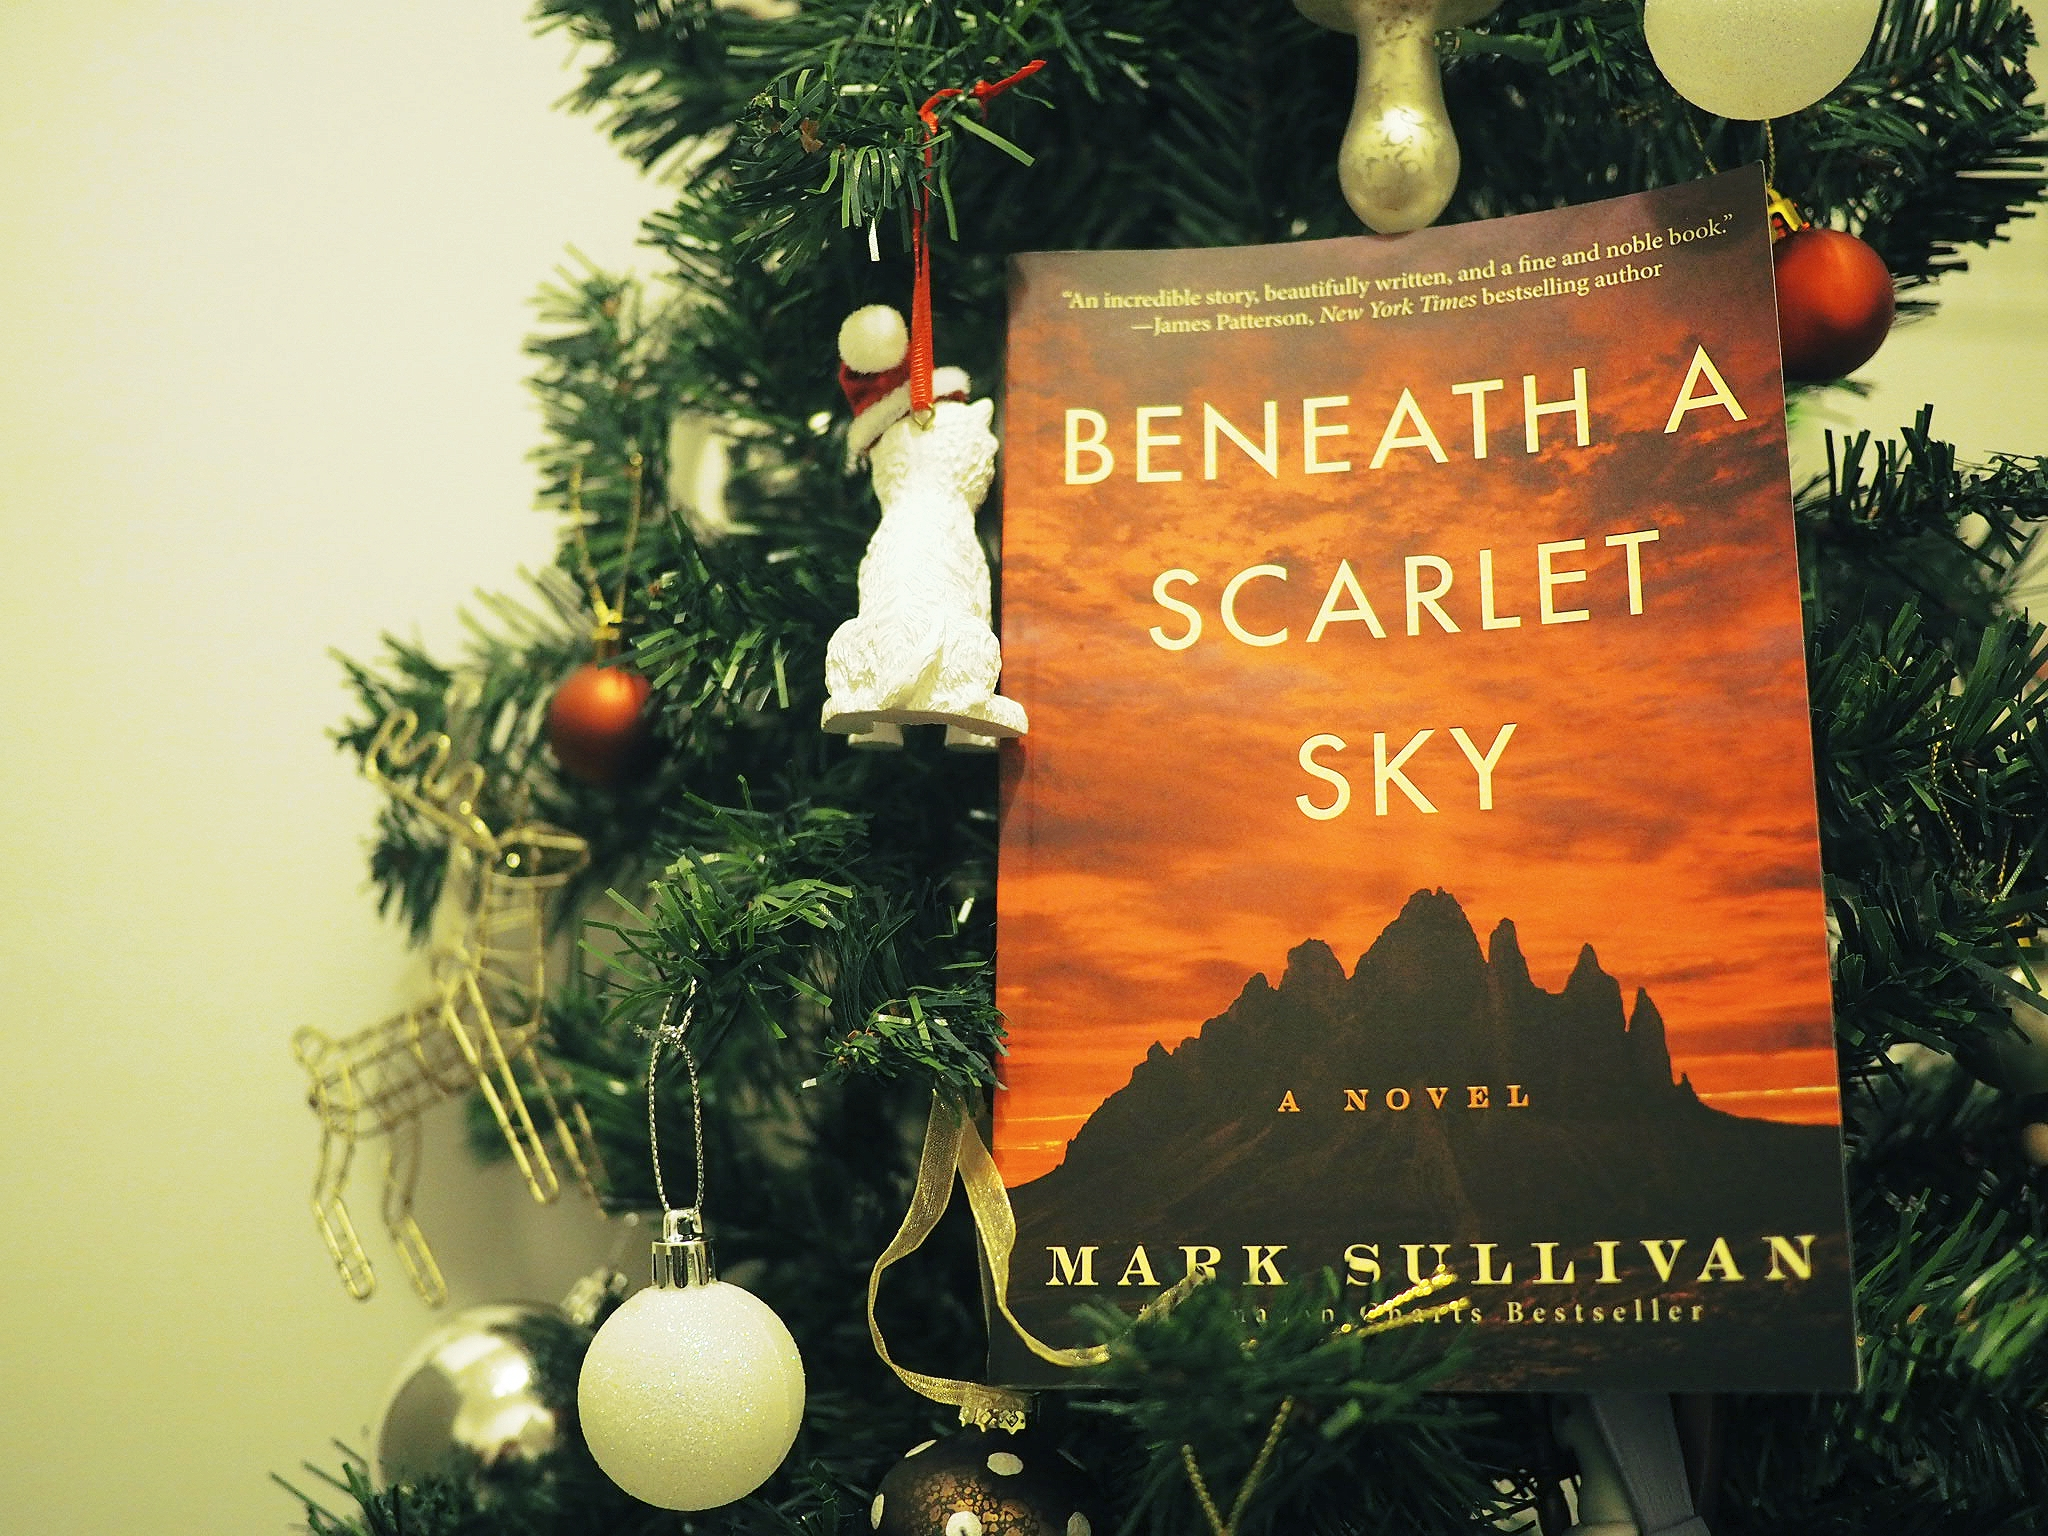 Bookmas Day 8: Book Advent Calendar #4 (and a wee giveaway!)